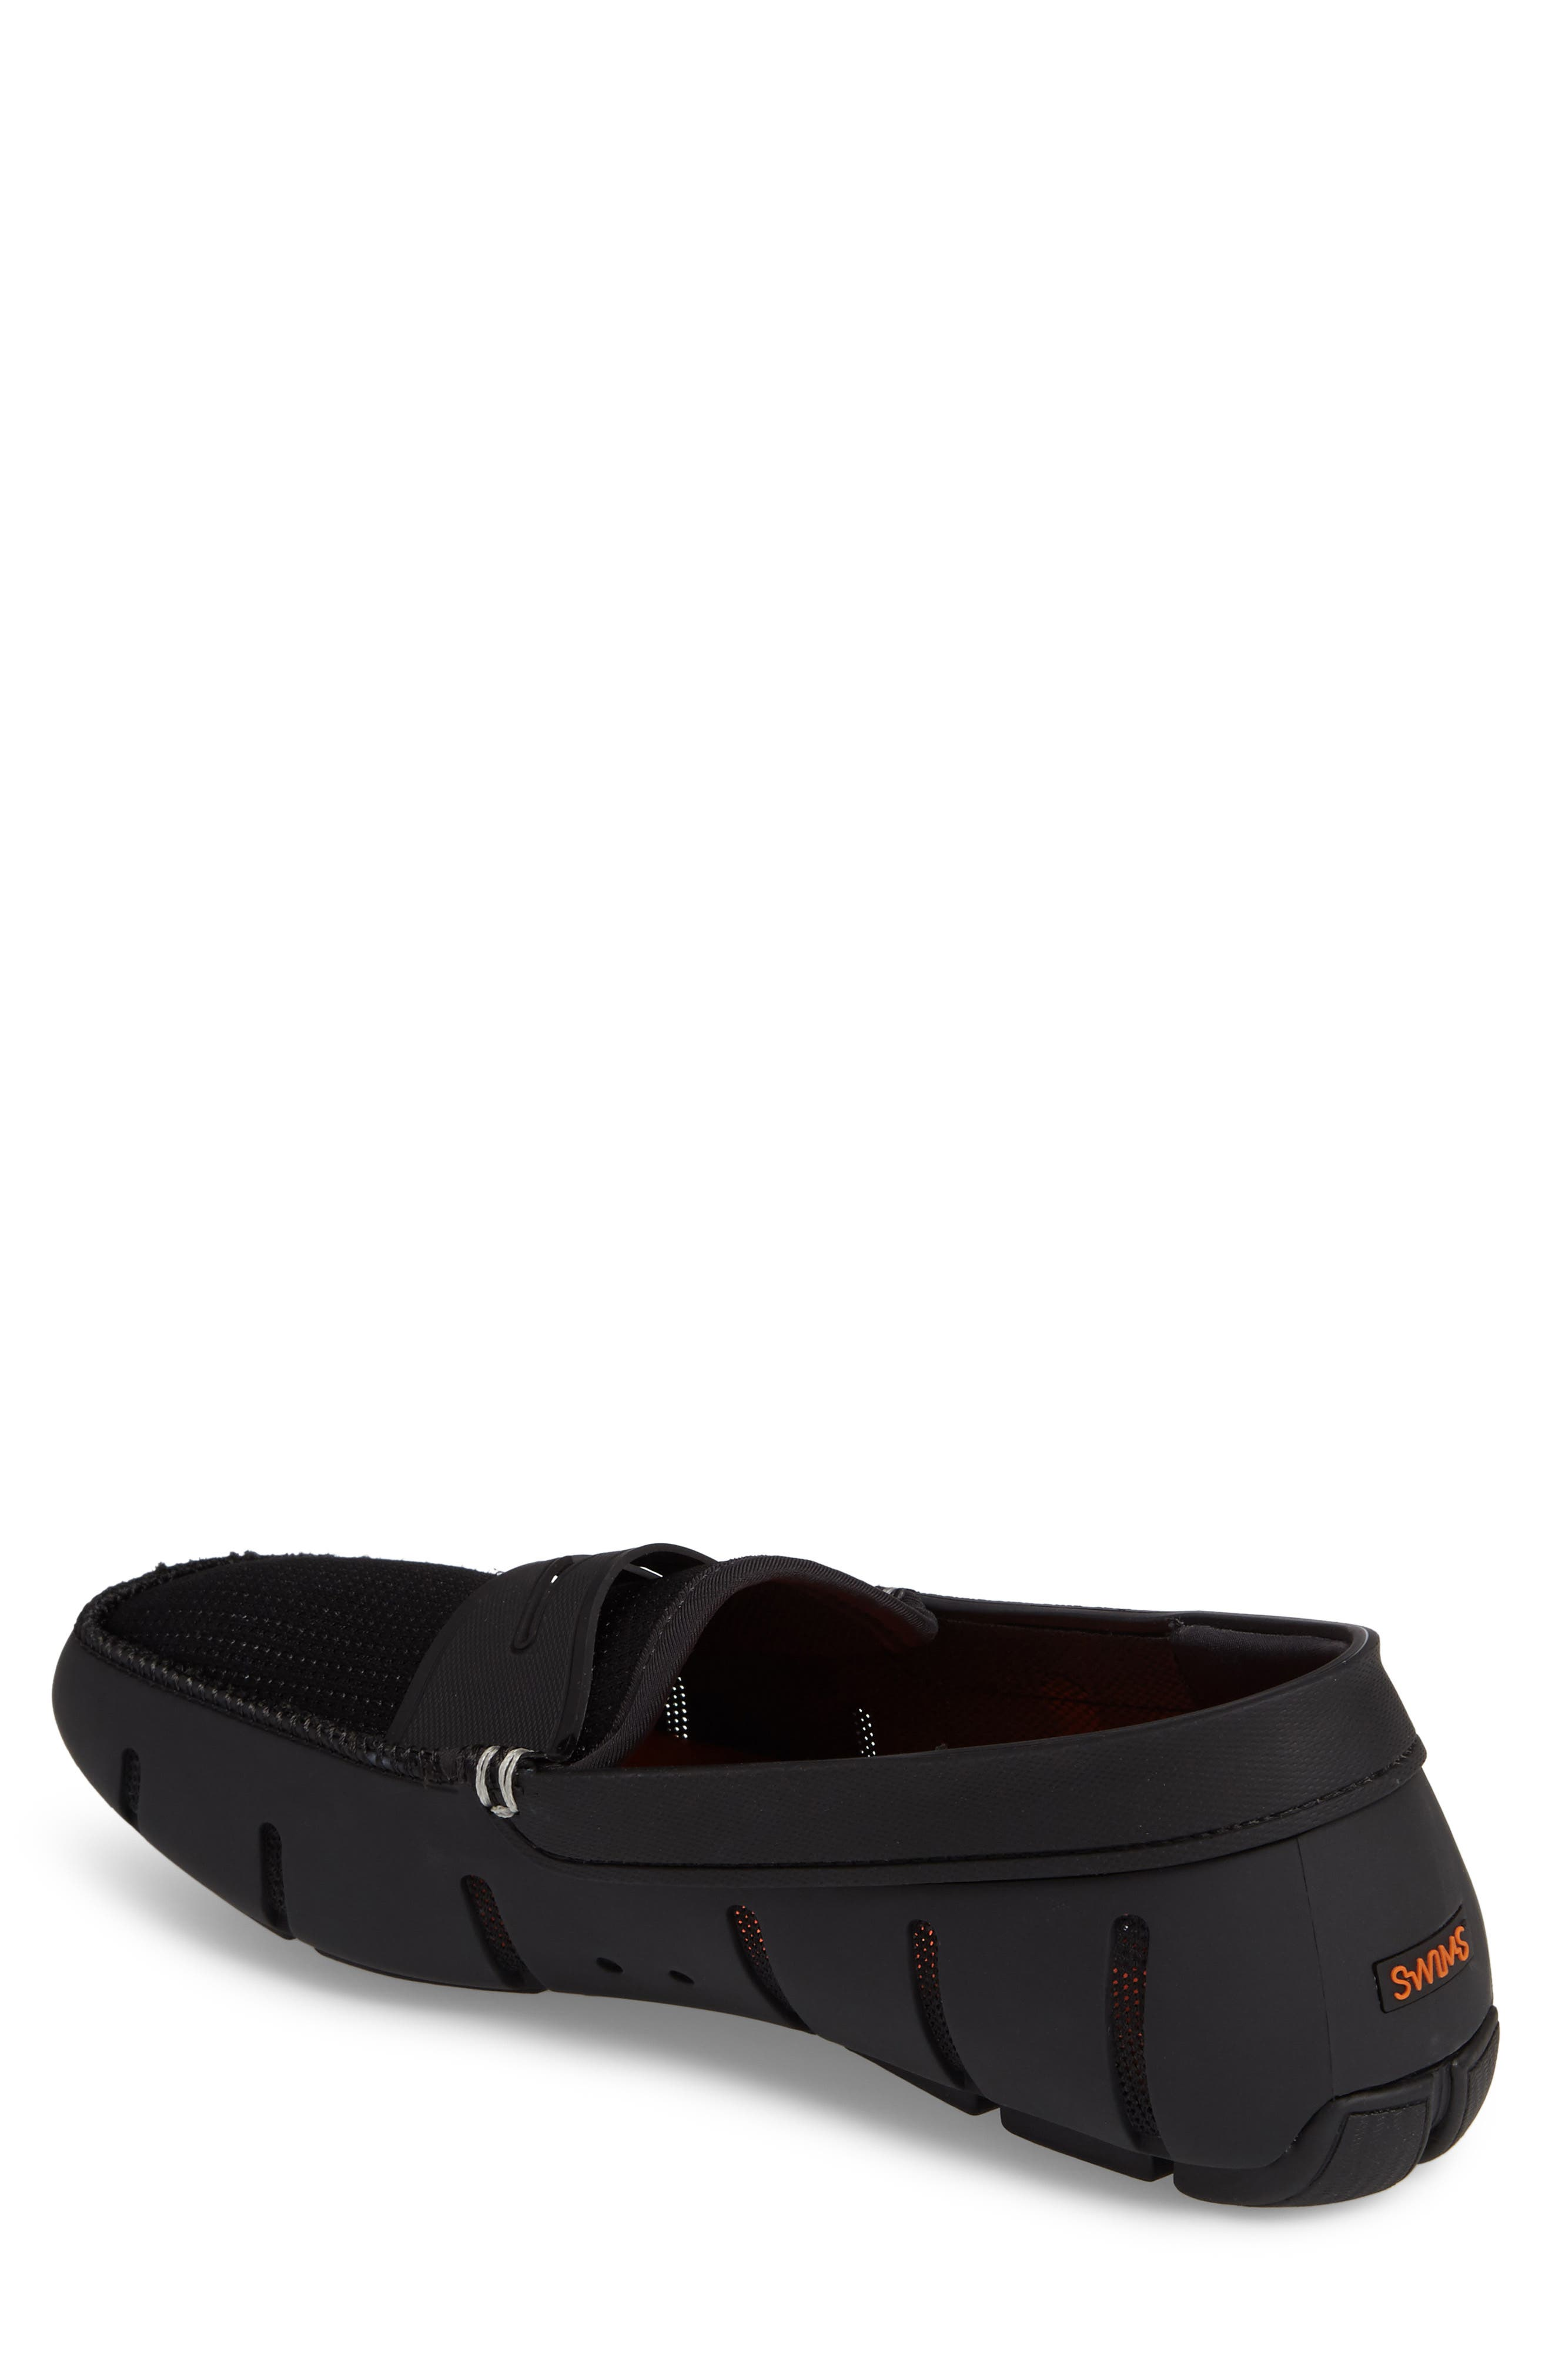 SWIMS, Penny Loafer, Alternate thumbnail 2, color, BLACK/BLACK